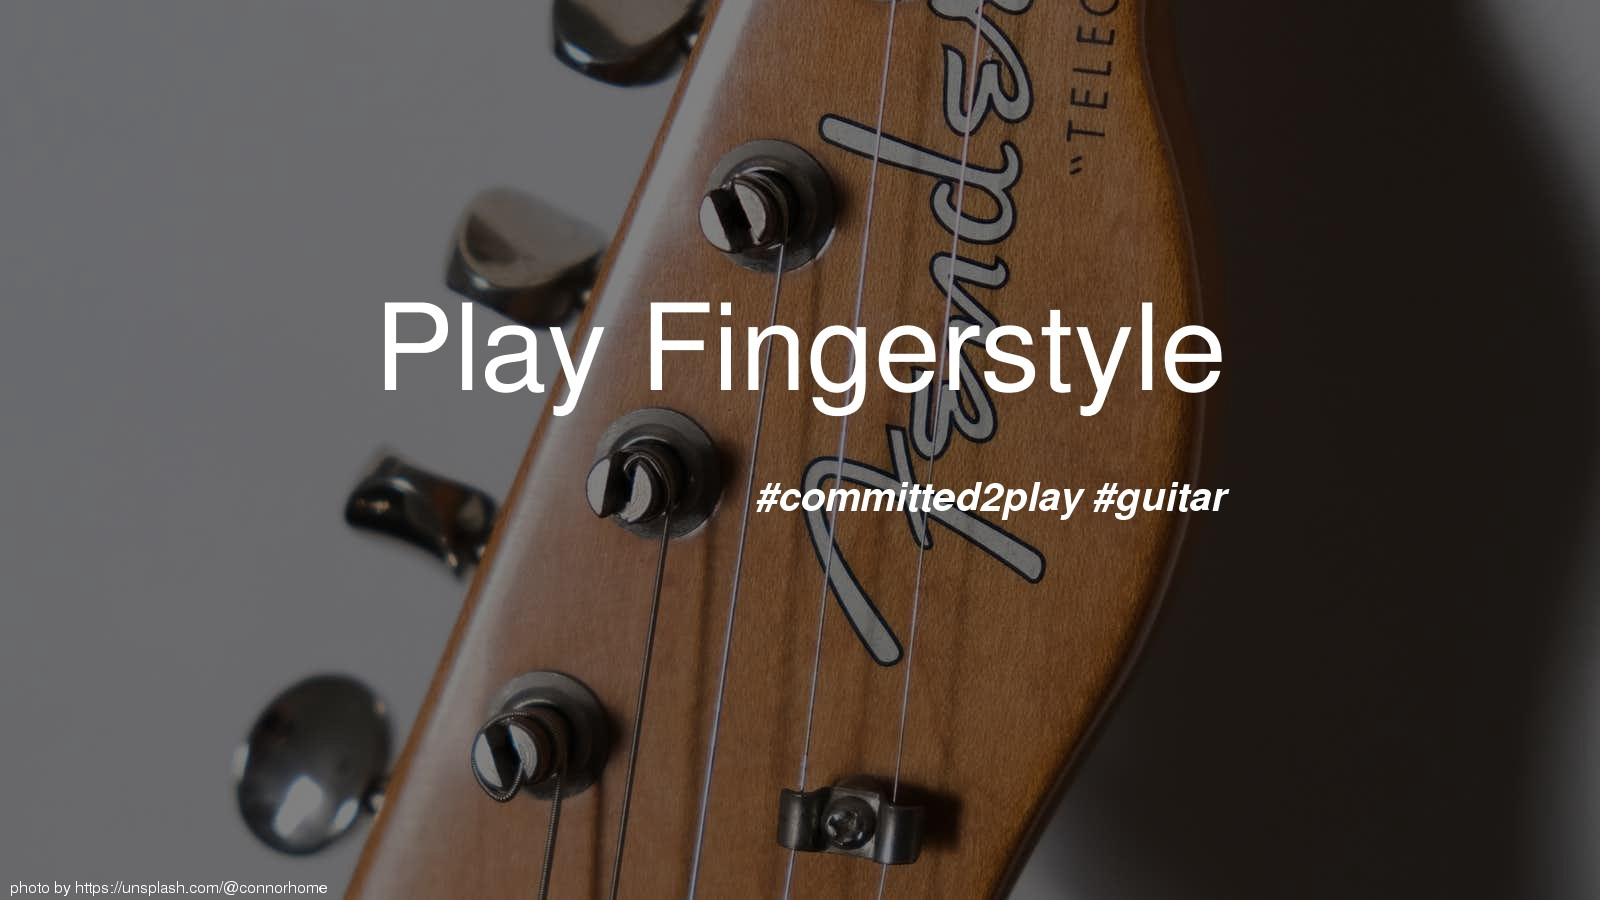 Play Fingerstyle